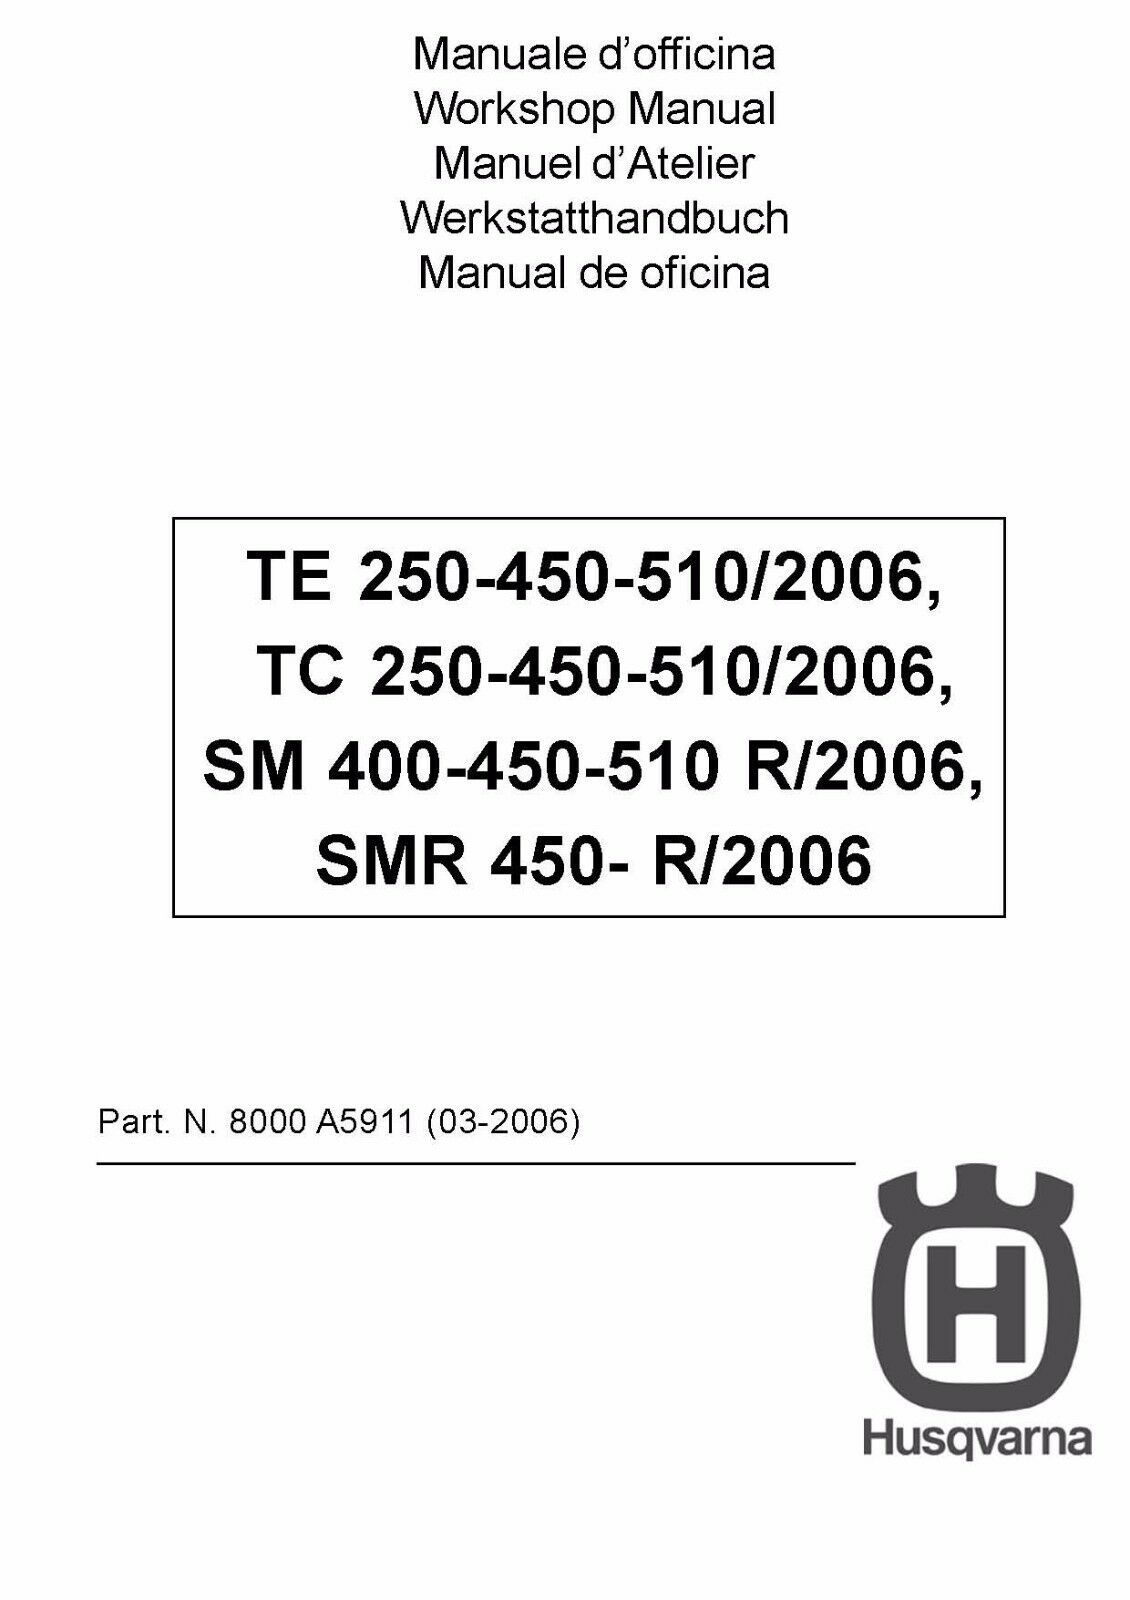 Husqvarna workshop service manual 2006 SMR 450- R 1 of 12Only 1 available  ...